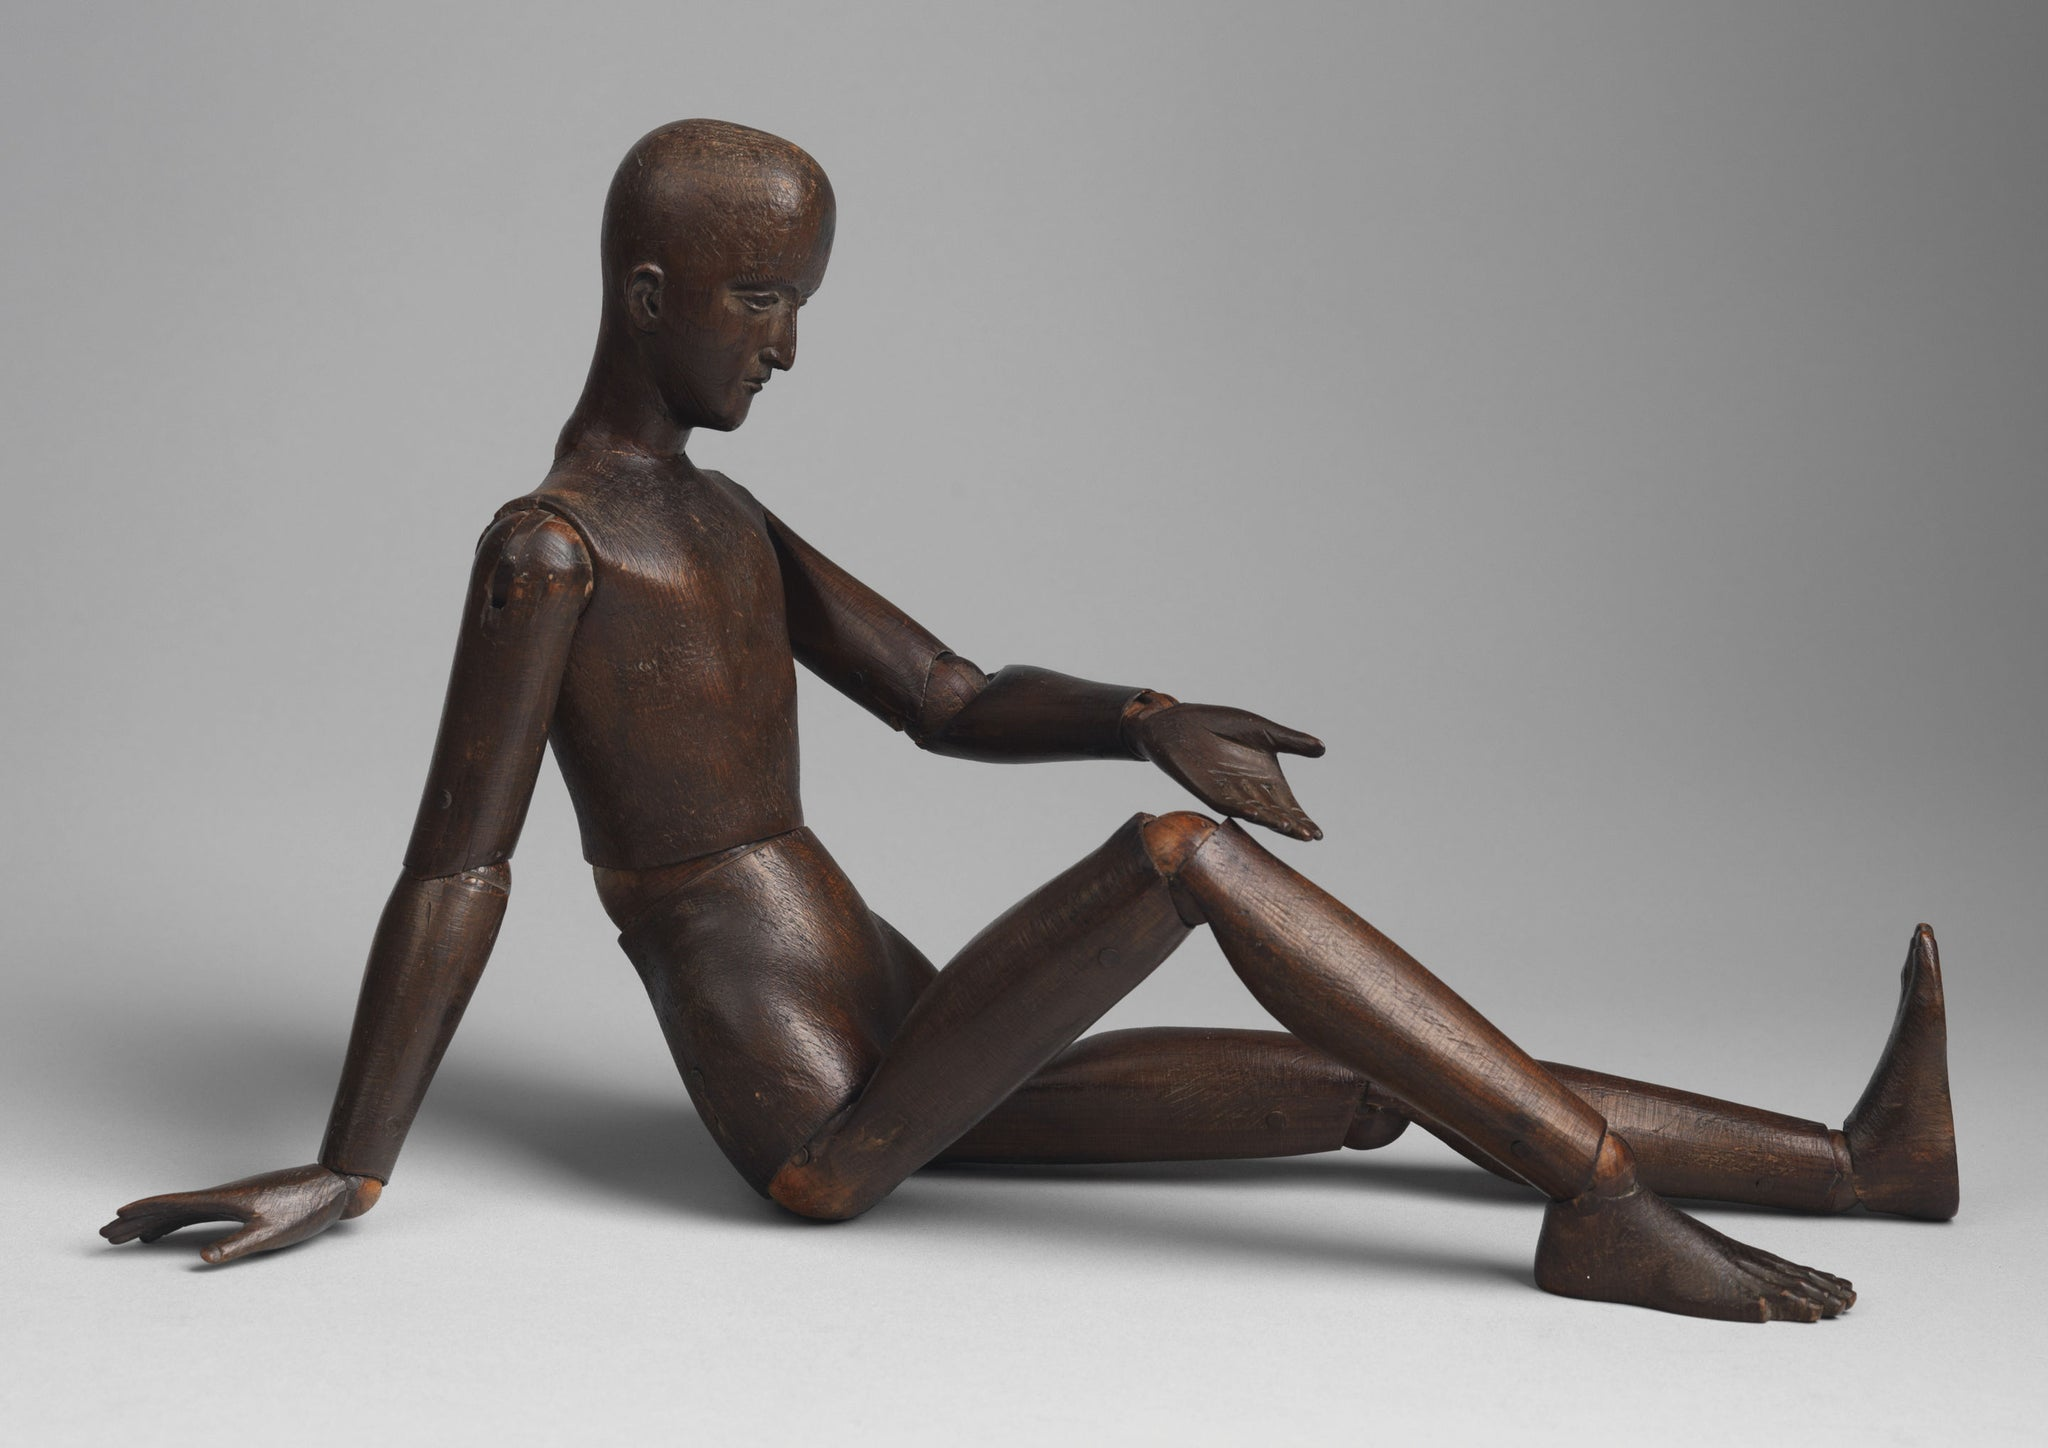 Articulated Artist's Manequin or Lay Figure